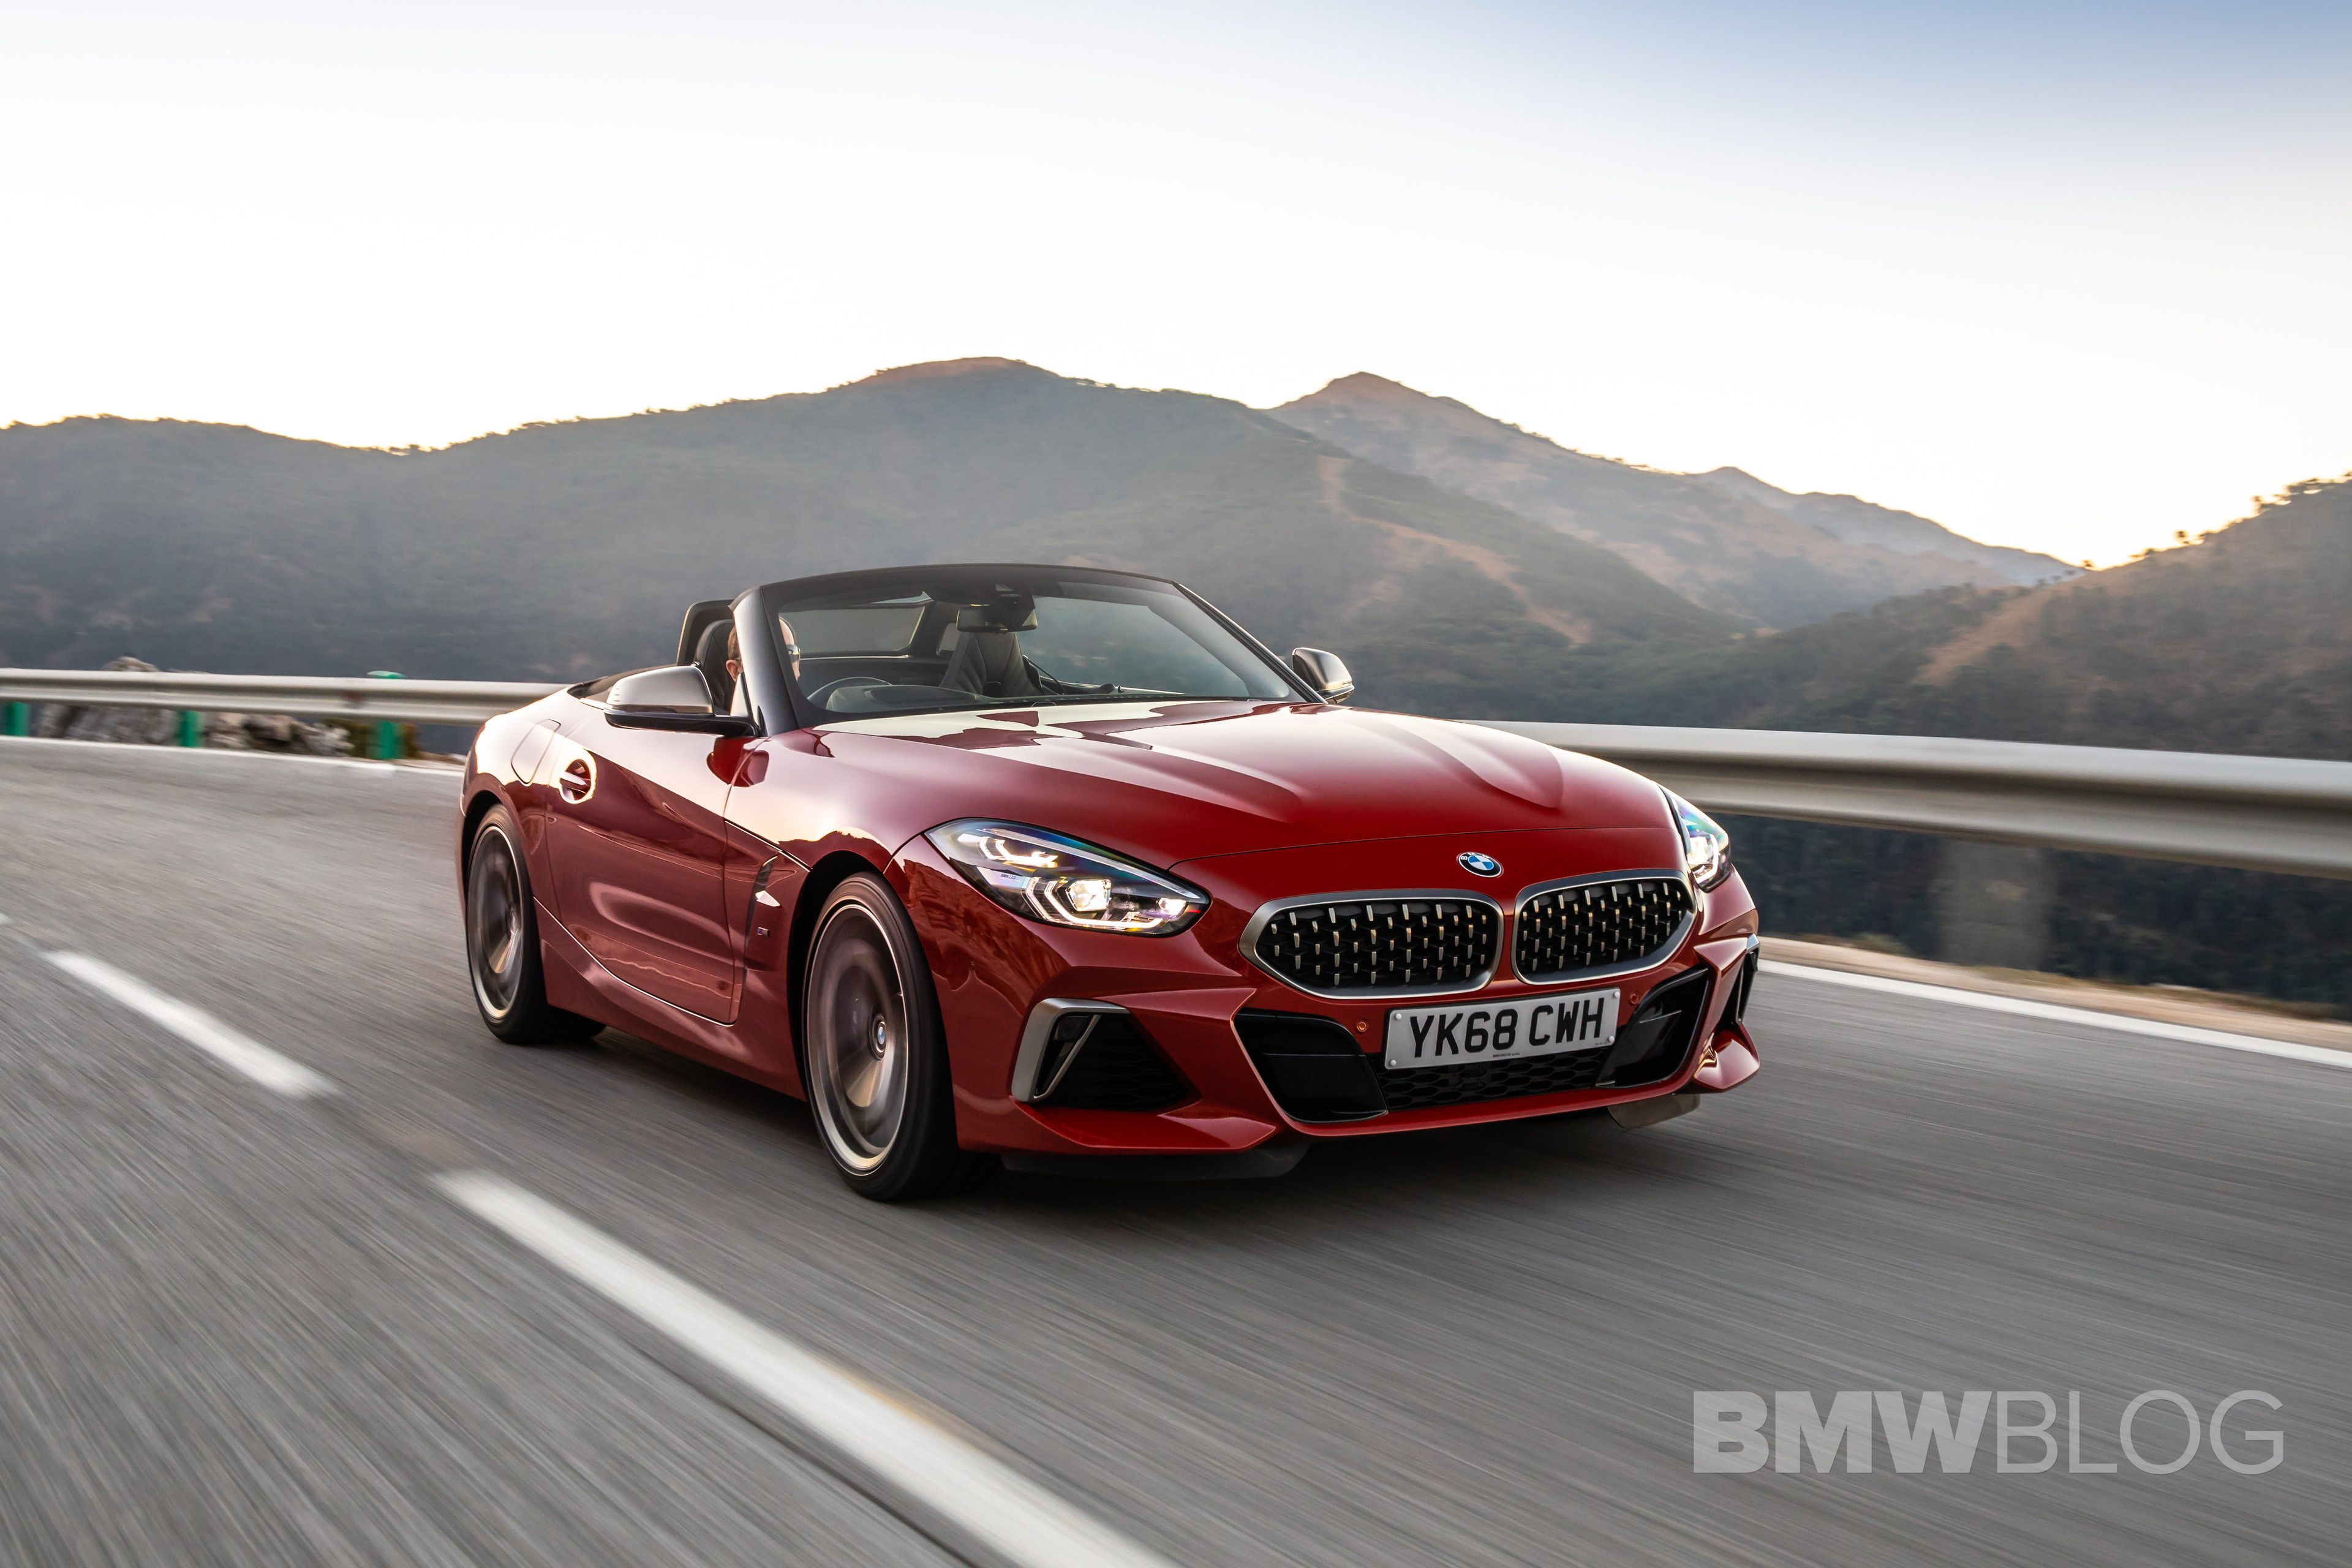 BMW Z4 M40i San Francisco Red 19